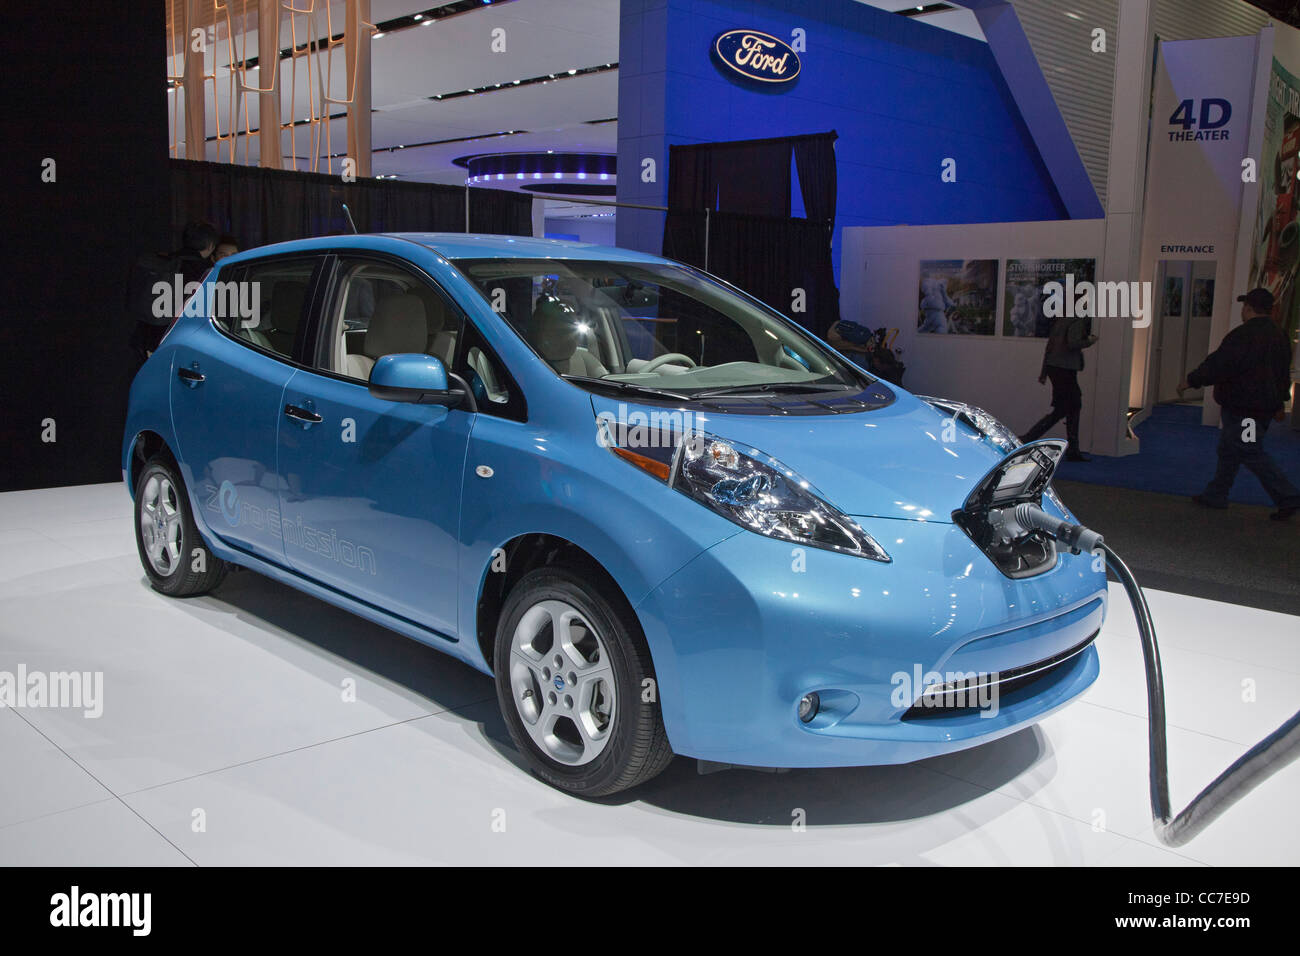 Detroit, Michigan - The Nissan Leaf electric vehicle on display at the North American International Auto Show. - Stock Image